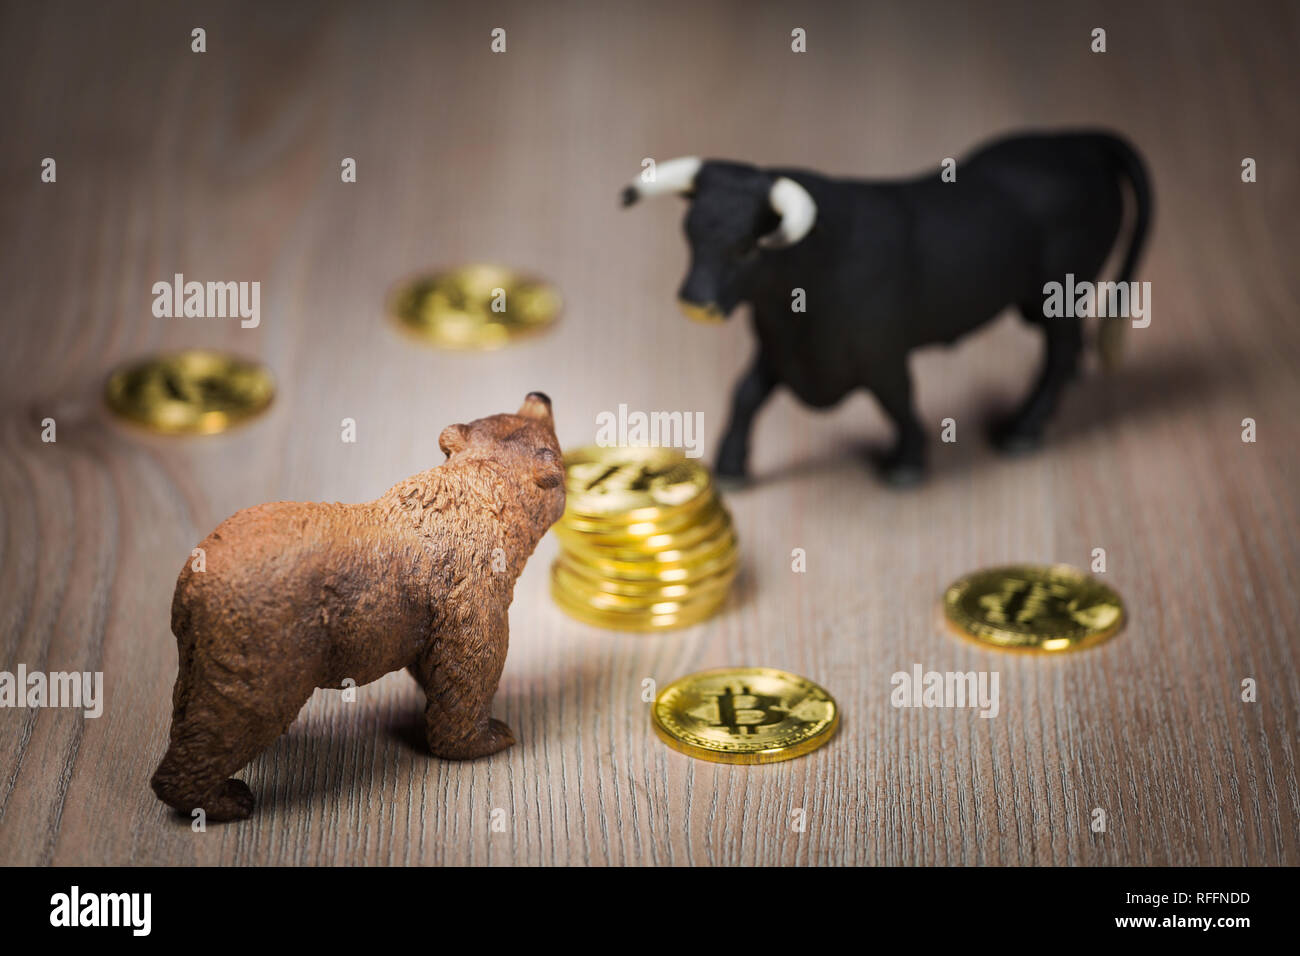 Cryptocurrency bitcoin bear and bull figures on a wooden table. Bearish or bullish market trend concept Stock Photo